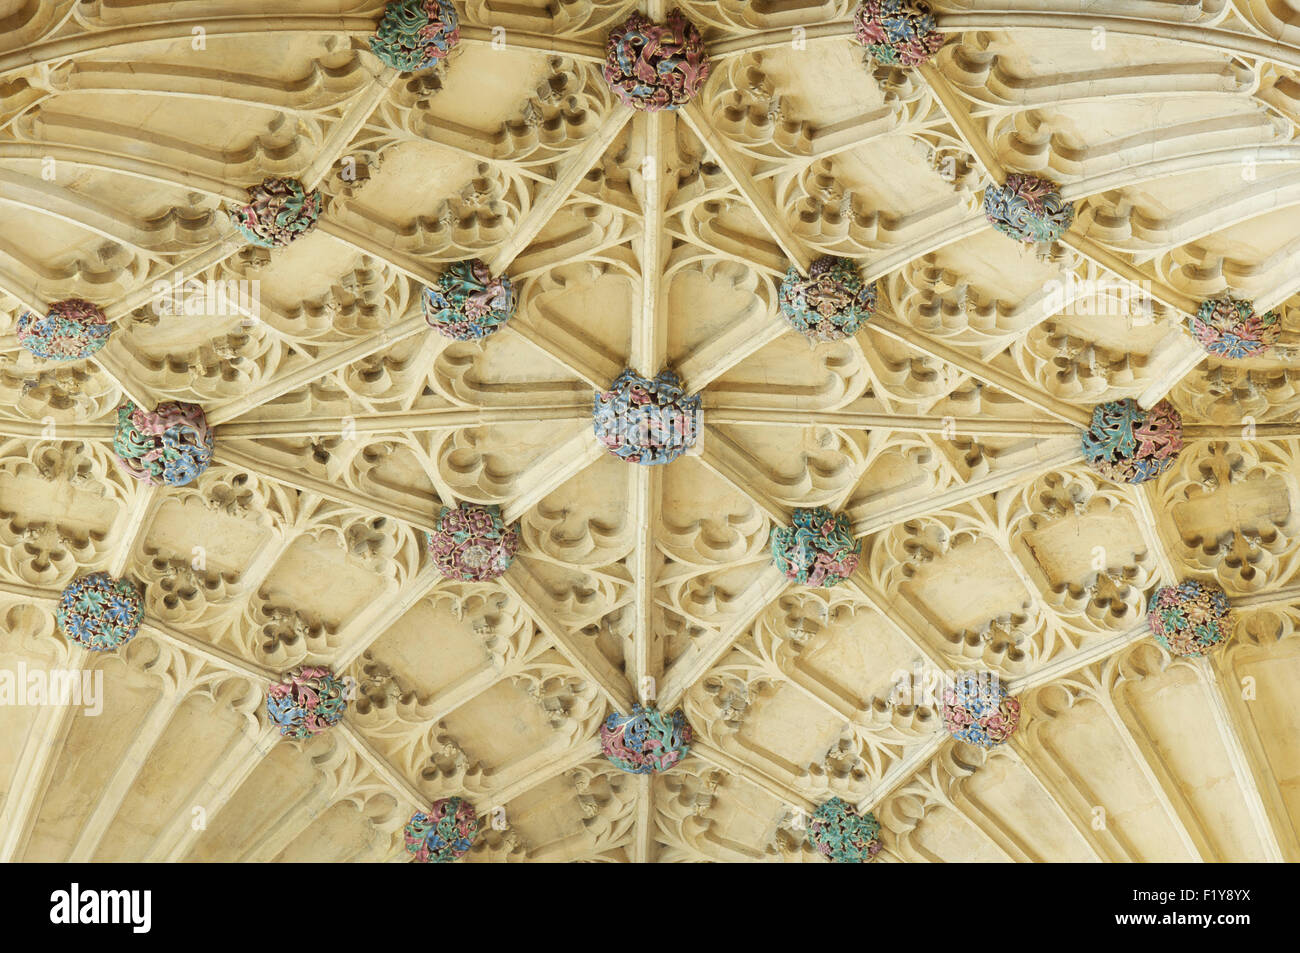 A detail of the colourful bosses of the ornate Gothic fan vaulted ceiling above the organ loft, Sherborne Abbey, - Stock Image